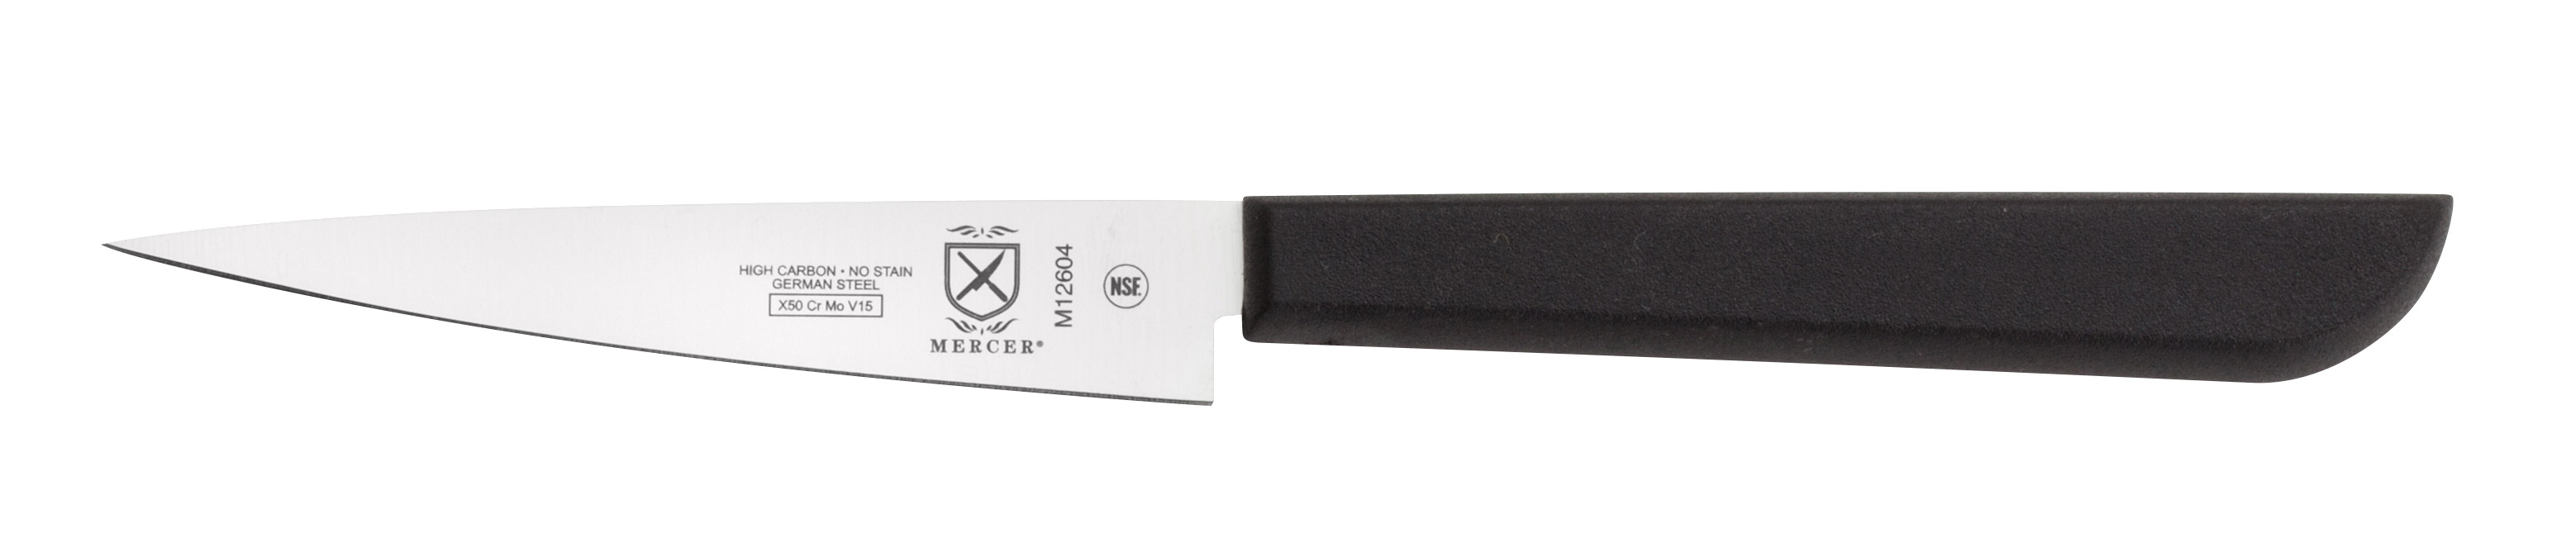 Mercer Culinary M12604 knife, carving